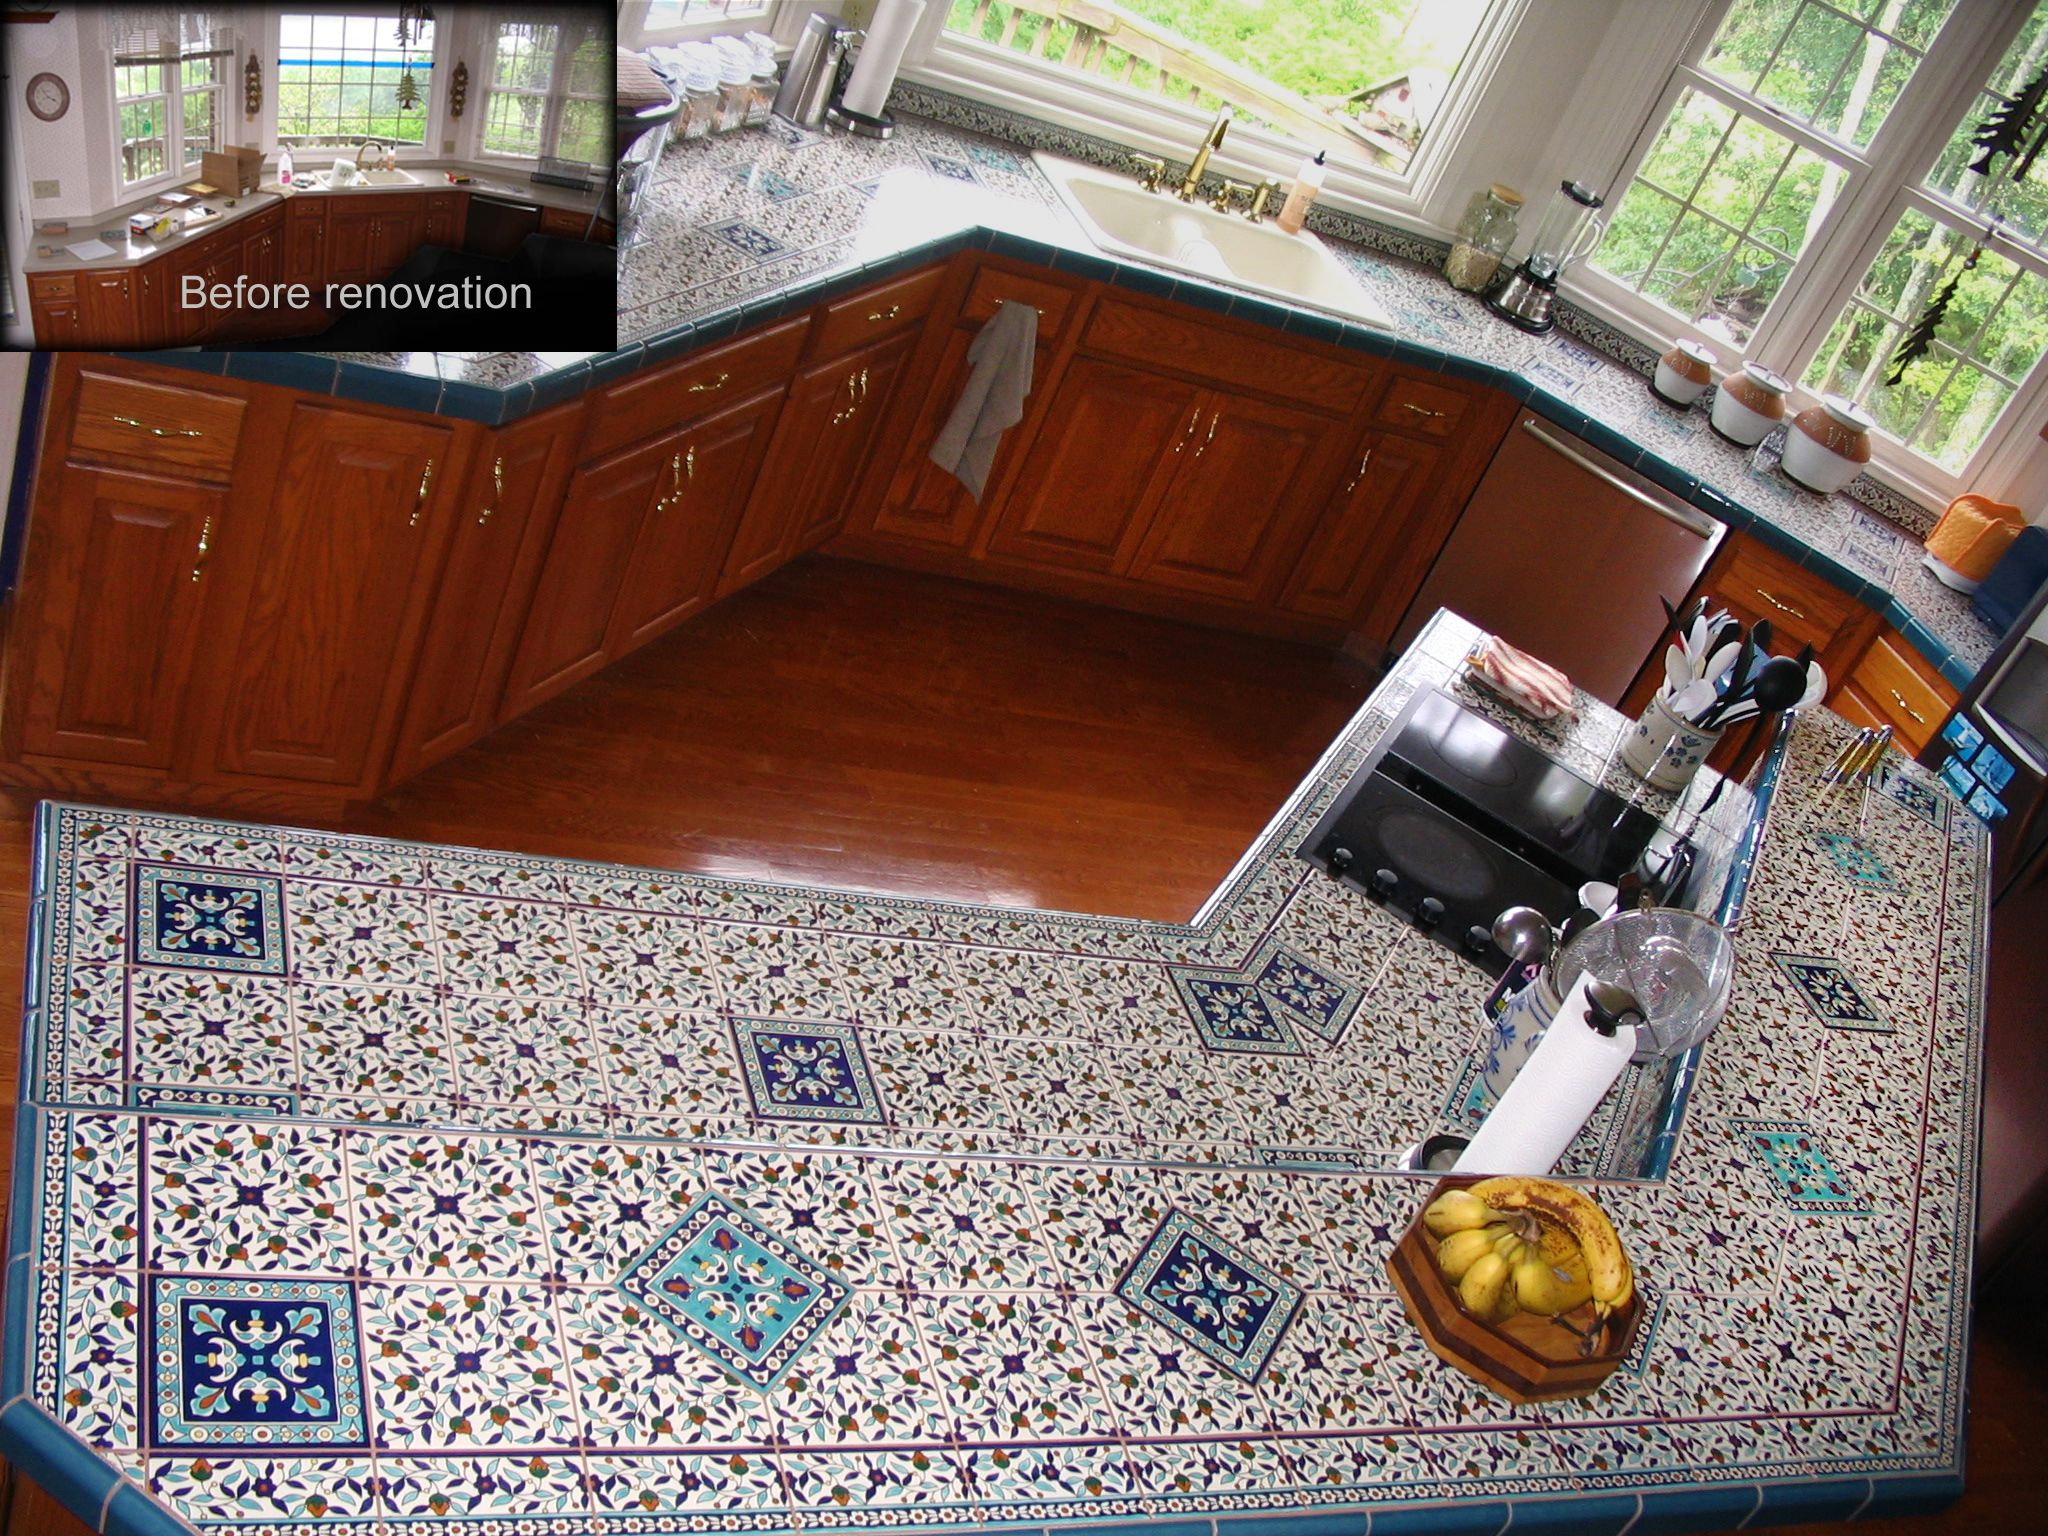 glass tile kitchen countertop mobile food for sale custom hand painted ceramic